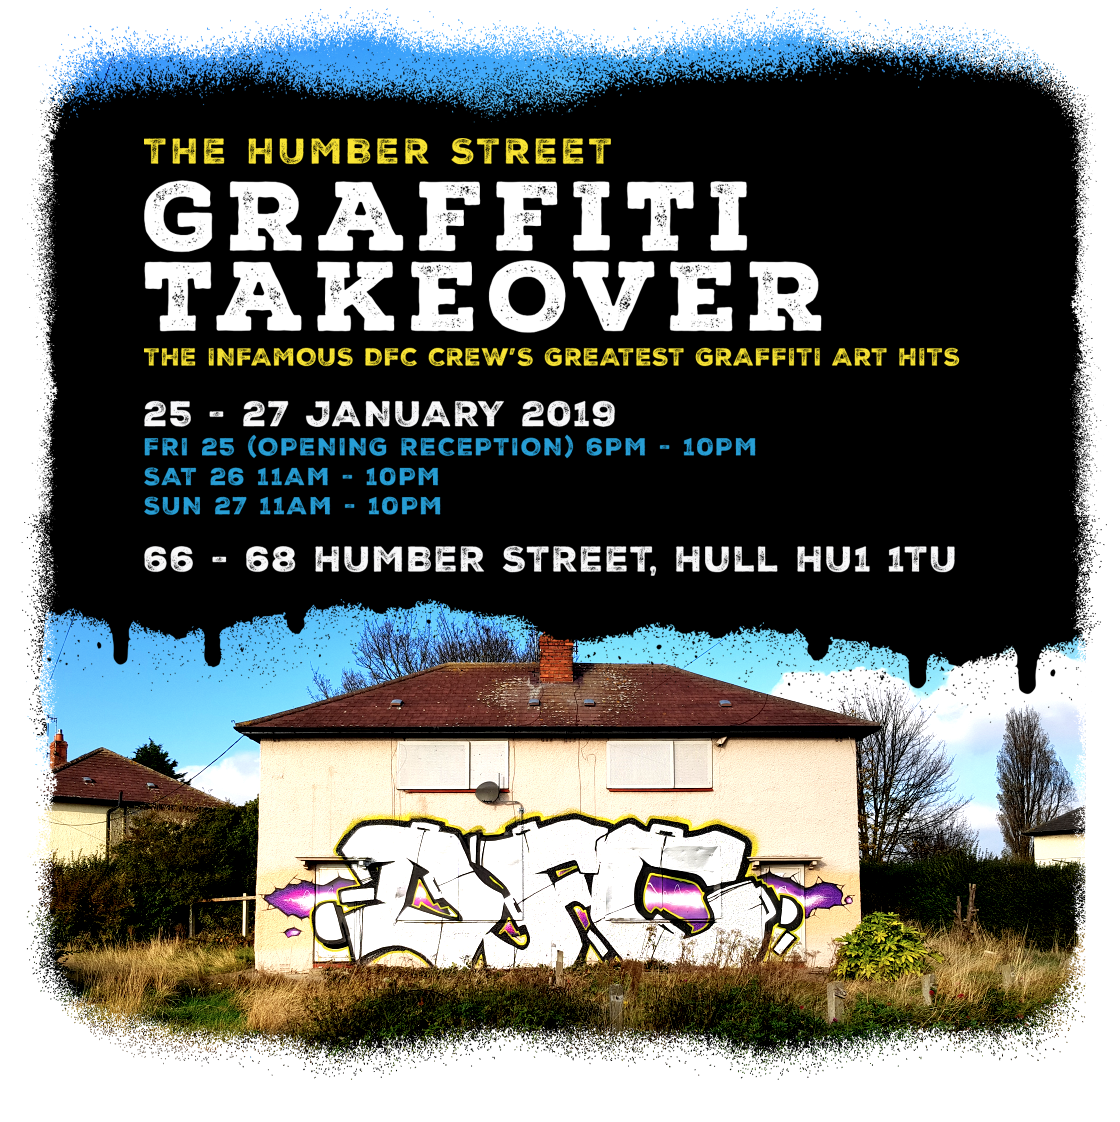 Humber Street Graffiti Takeover flyer.PNG